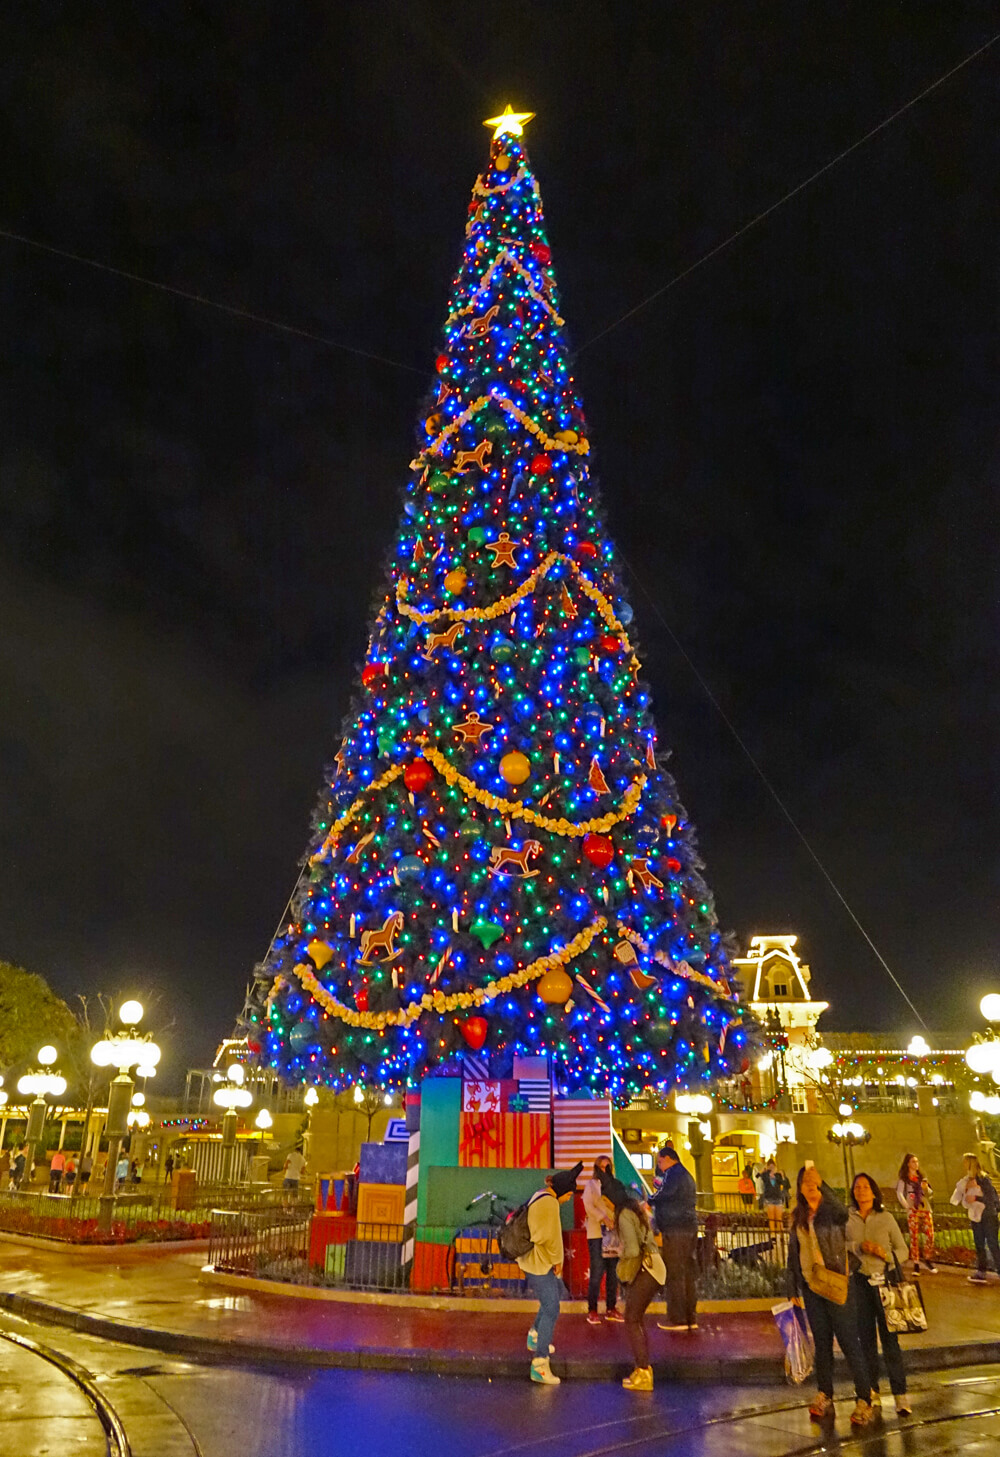 disney world holiday events 2018 magic kingdom tree decorating - When Is Disney World Decorated For Christmas